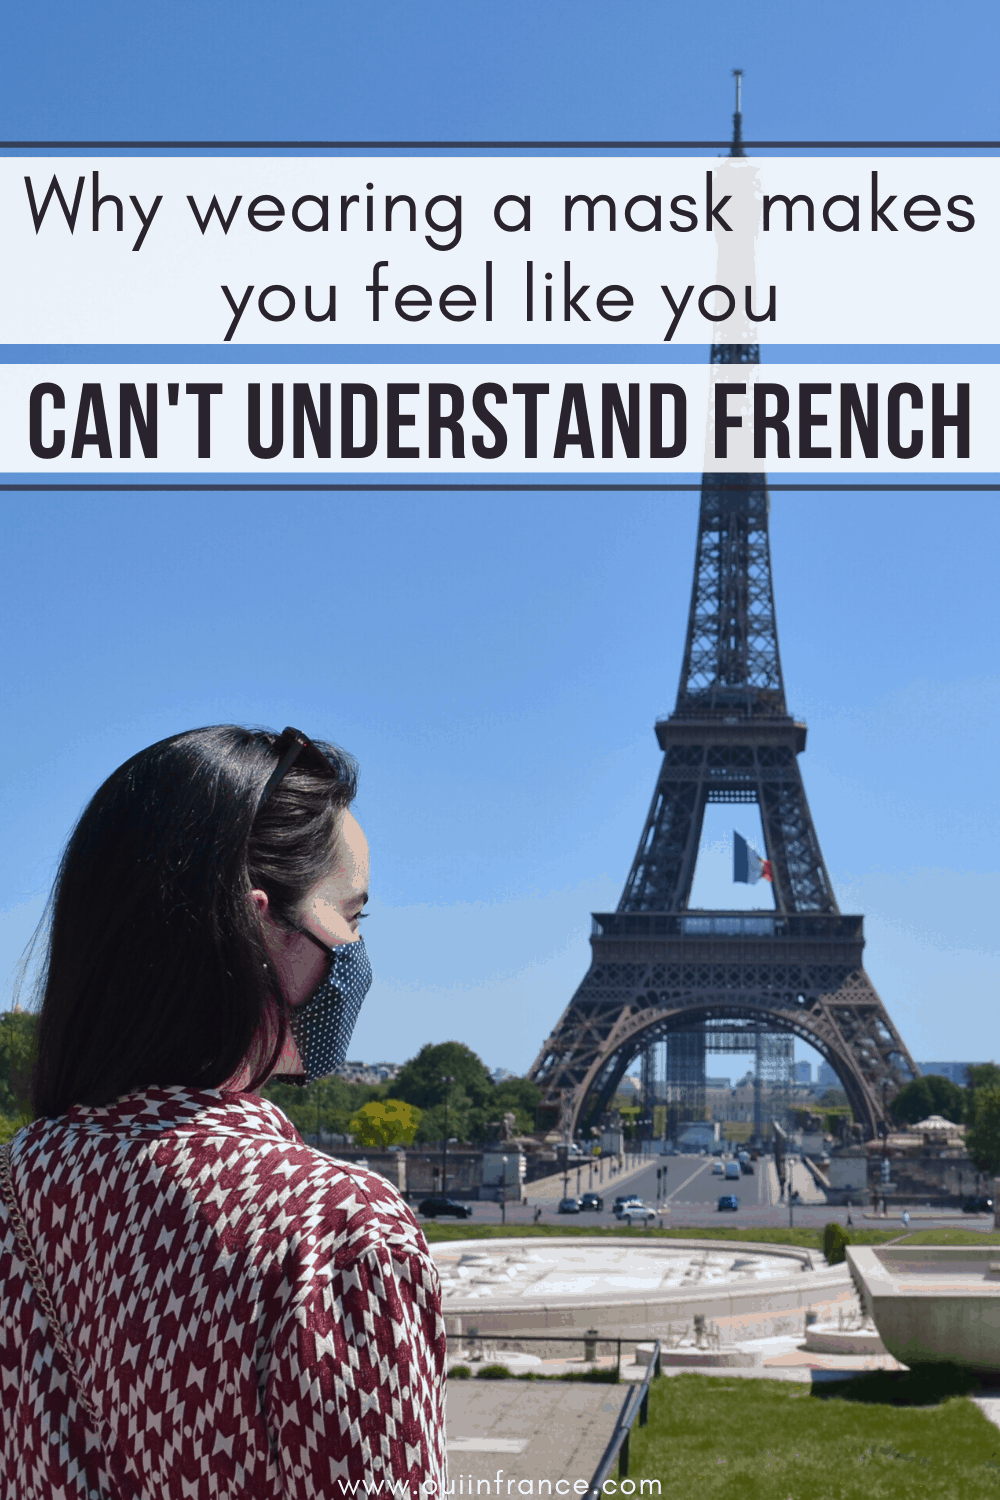 why wearing a mask makes French even harder for foreigners